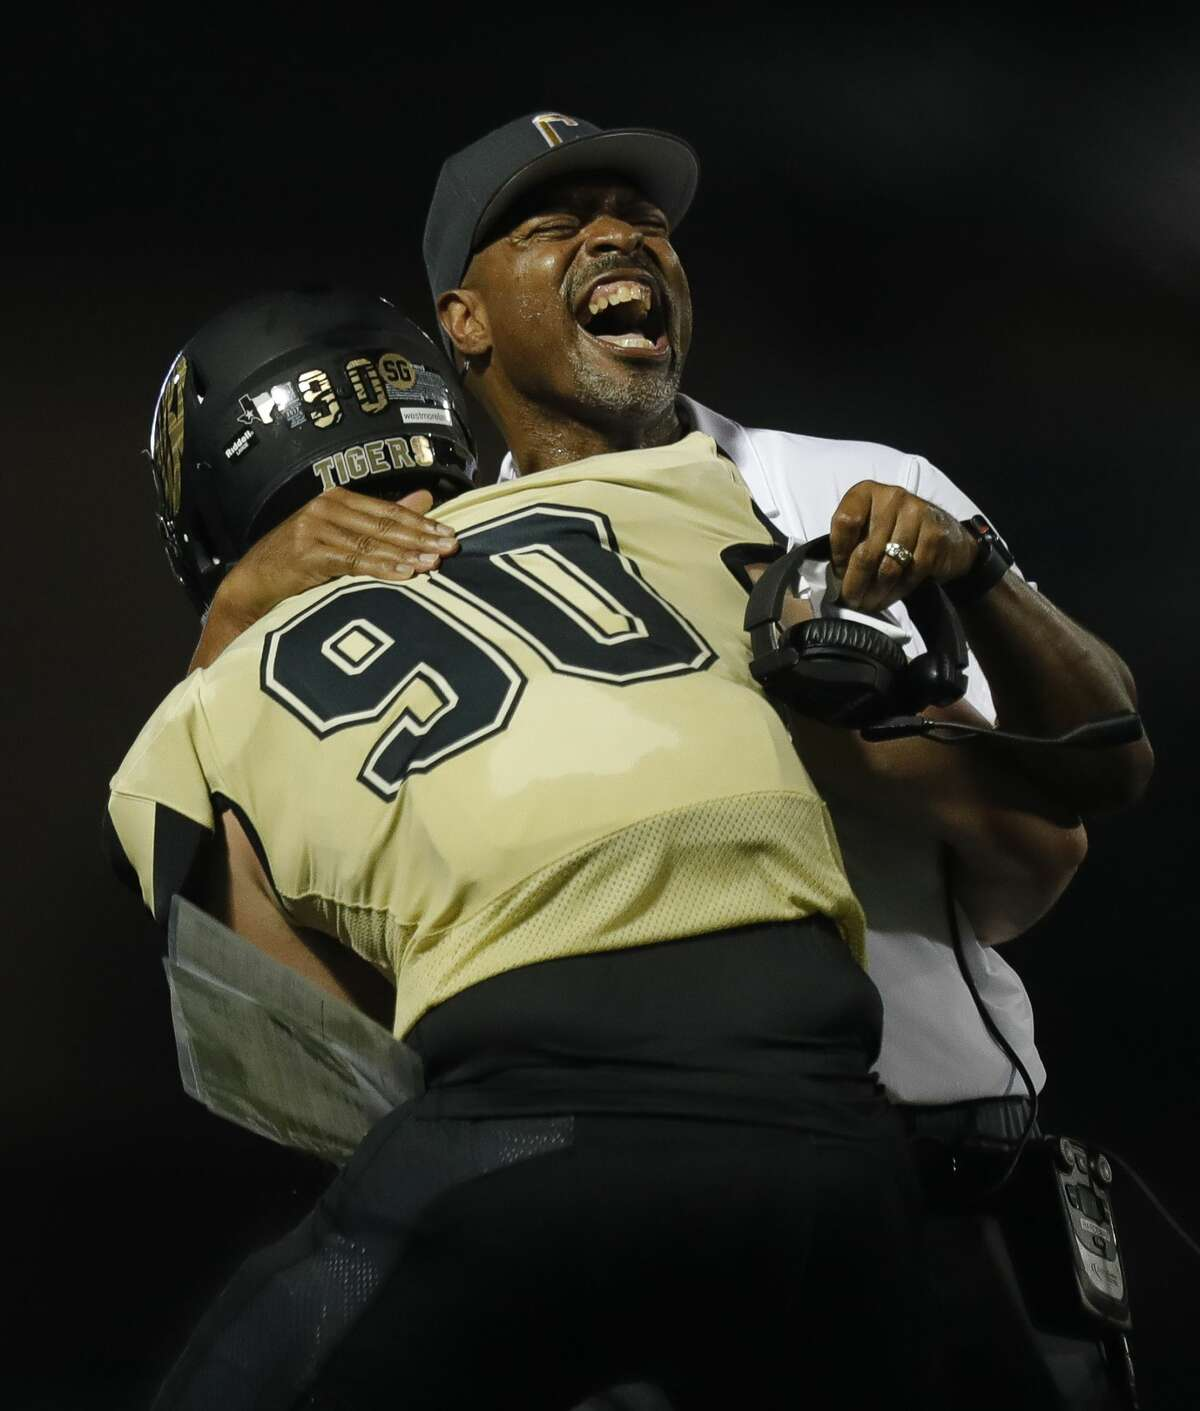 Conroe head coach Cedric Hardeman embraces defensive lineman Matthew Westmoreland (90) after he returned an interception for a 45-yard touchdown during the third quarter of a non-district high school football game at Buddy Moorhead Stadium, Friday, Aug. 27, 2021, in Conroe.